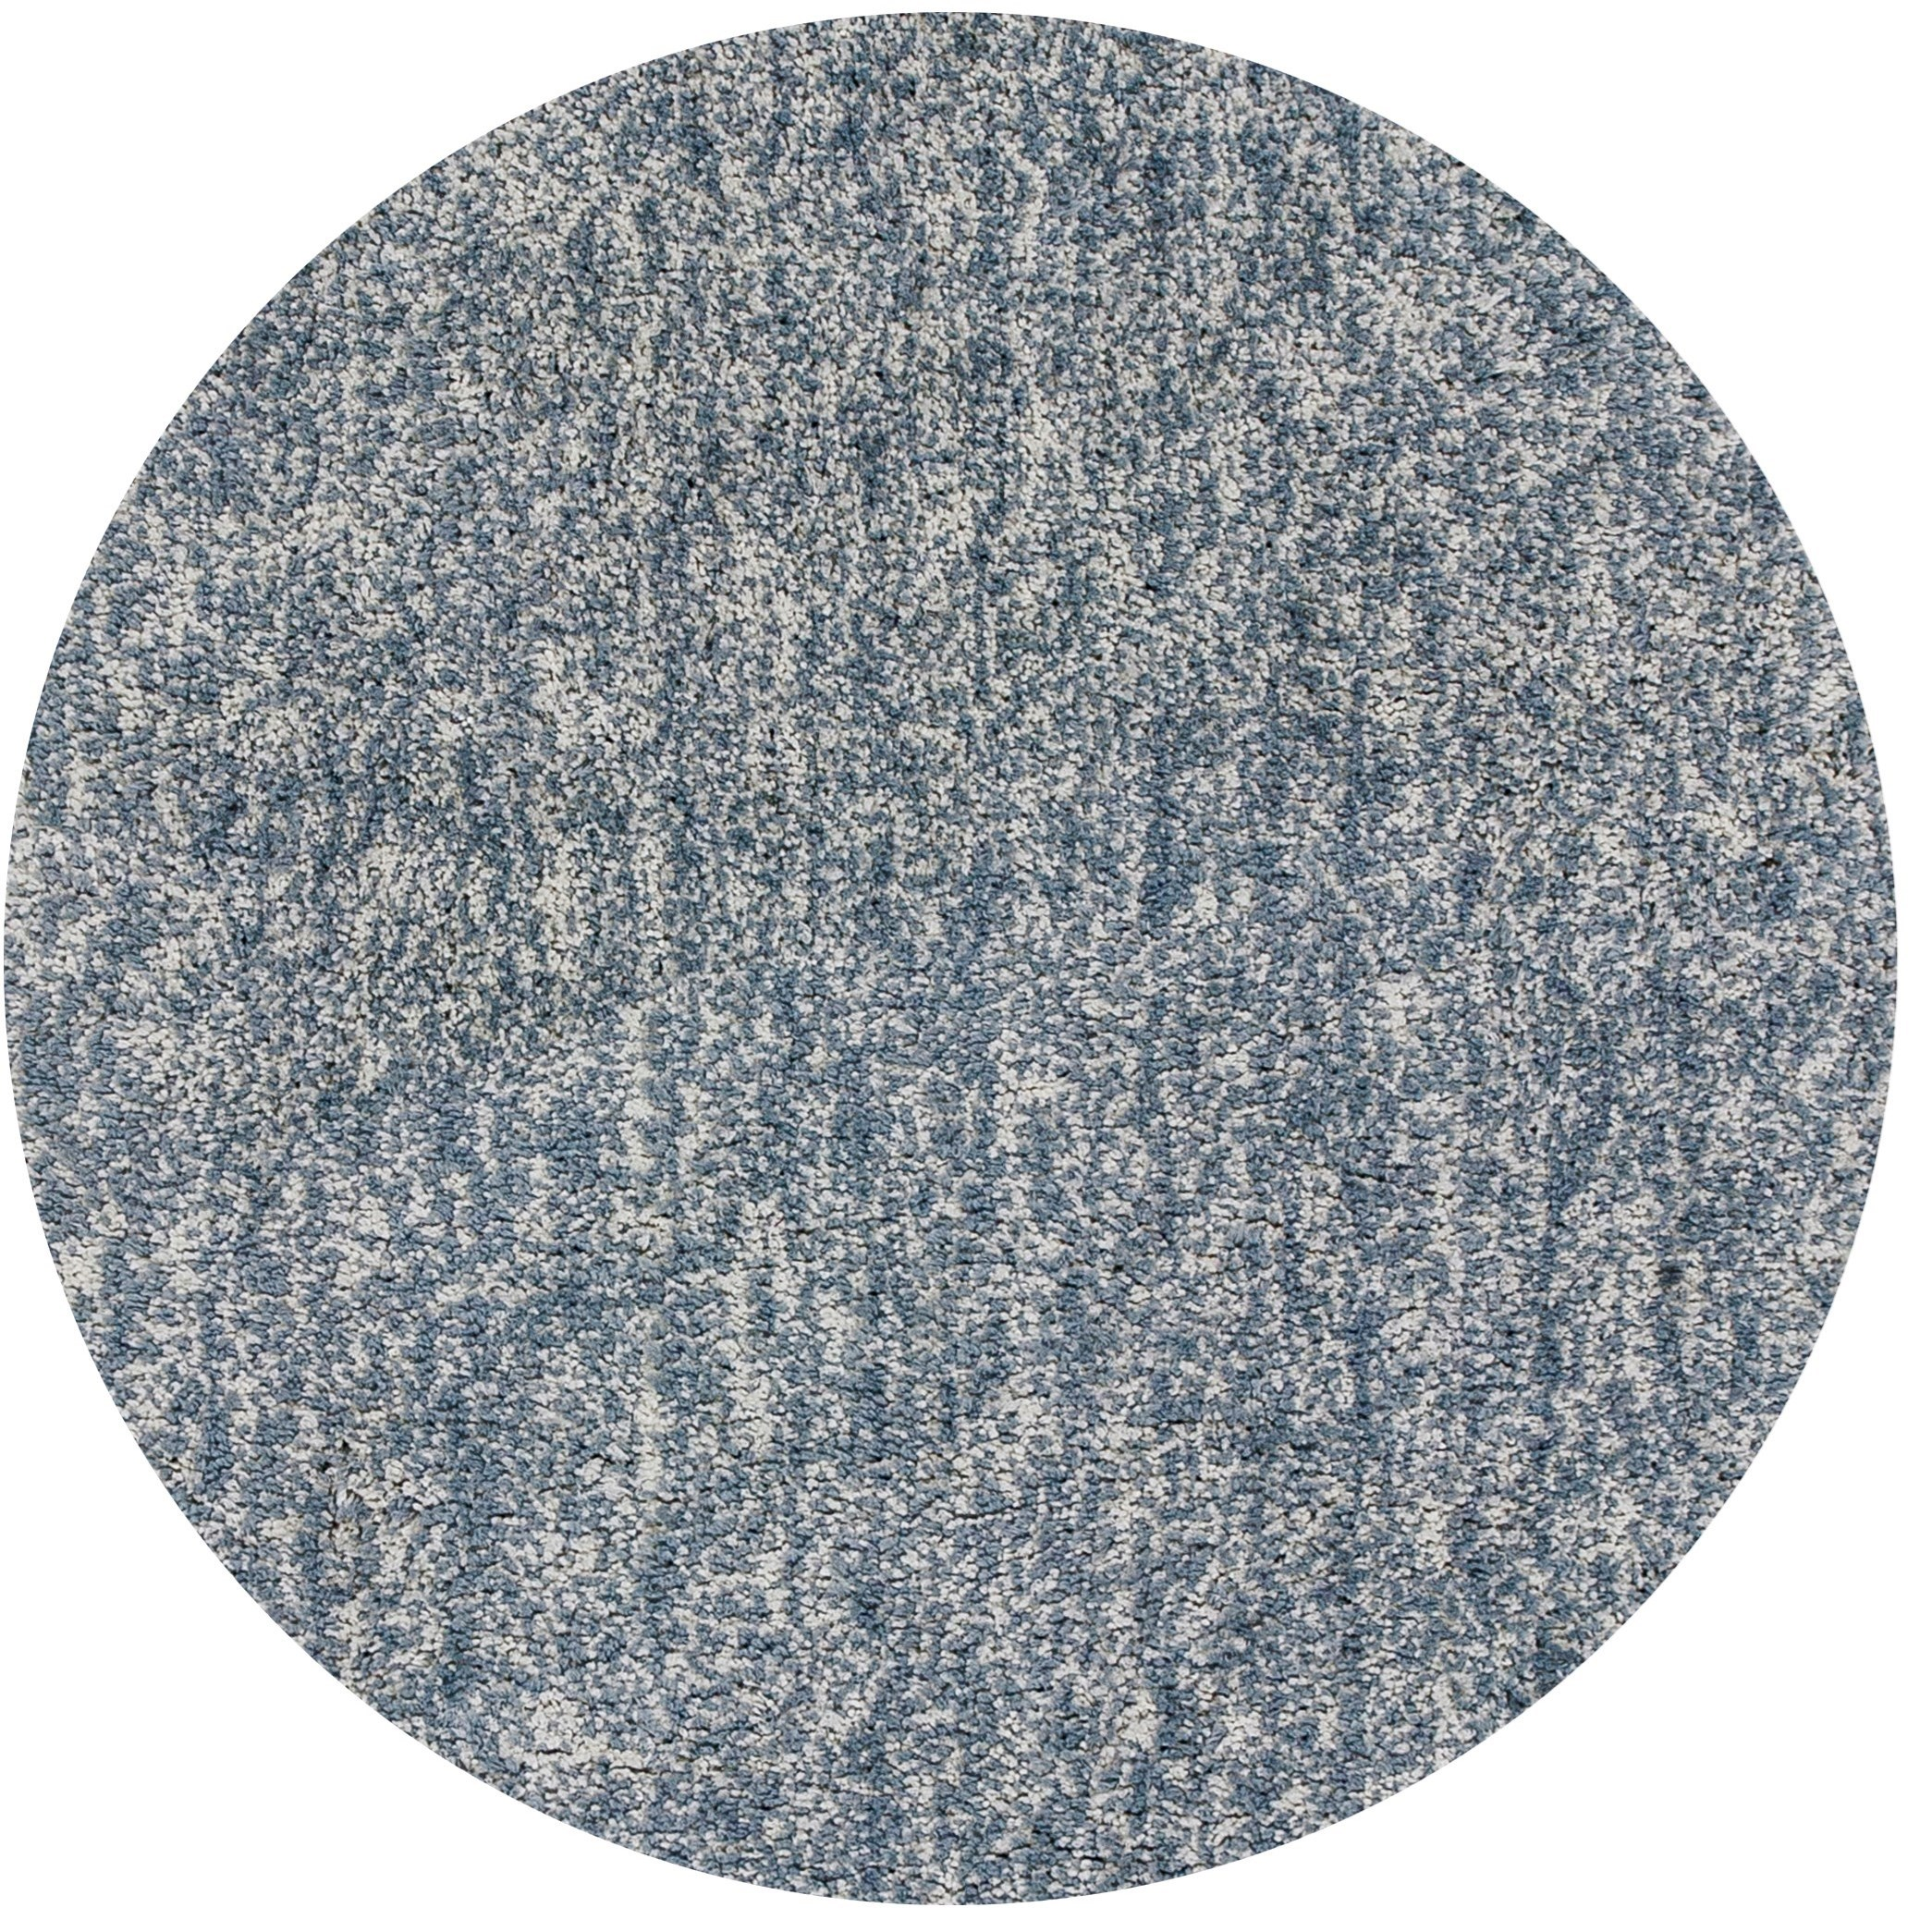 Bliss 8' X 8' Slate Heather Shag Area Rug by Kas at Zak's Home